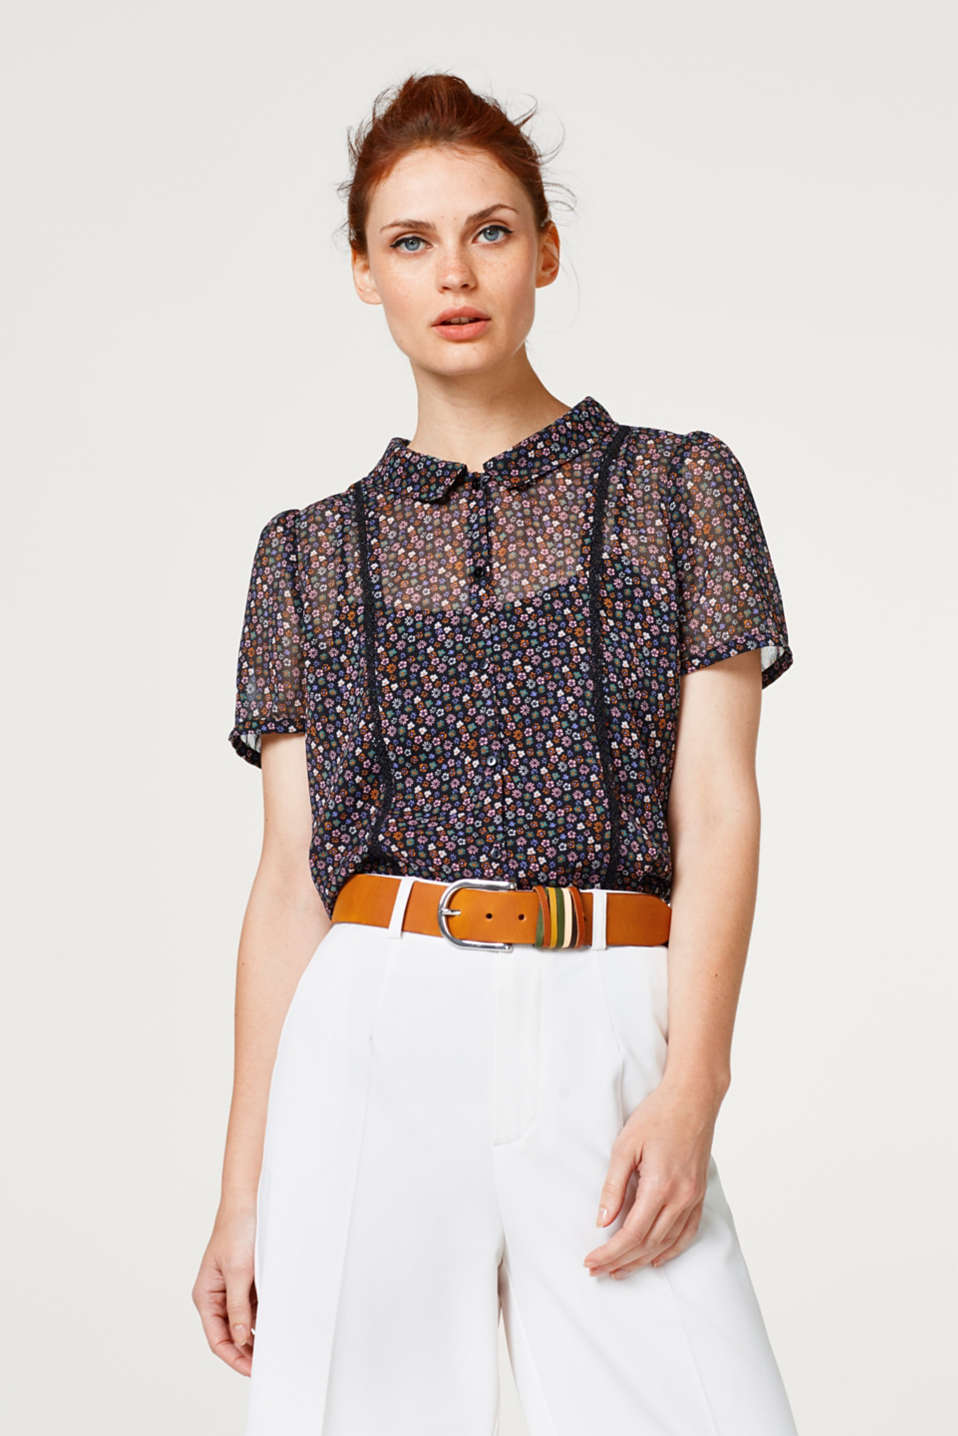 edc - Two-in-one blouse made of chiffon with a floral print